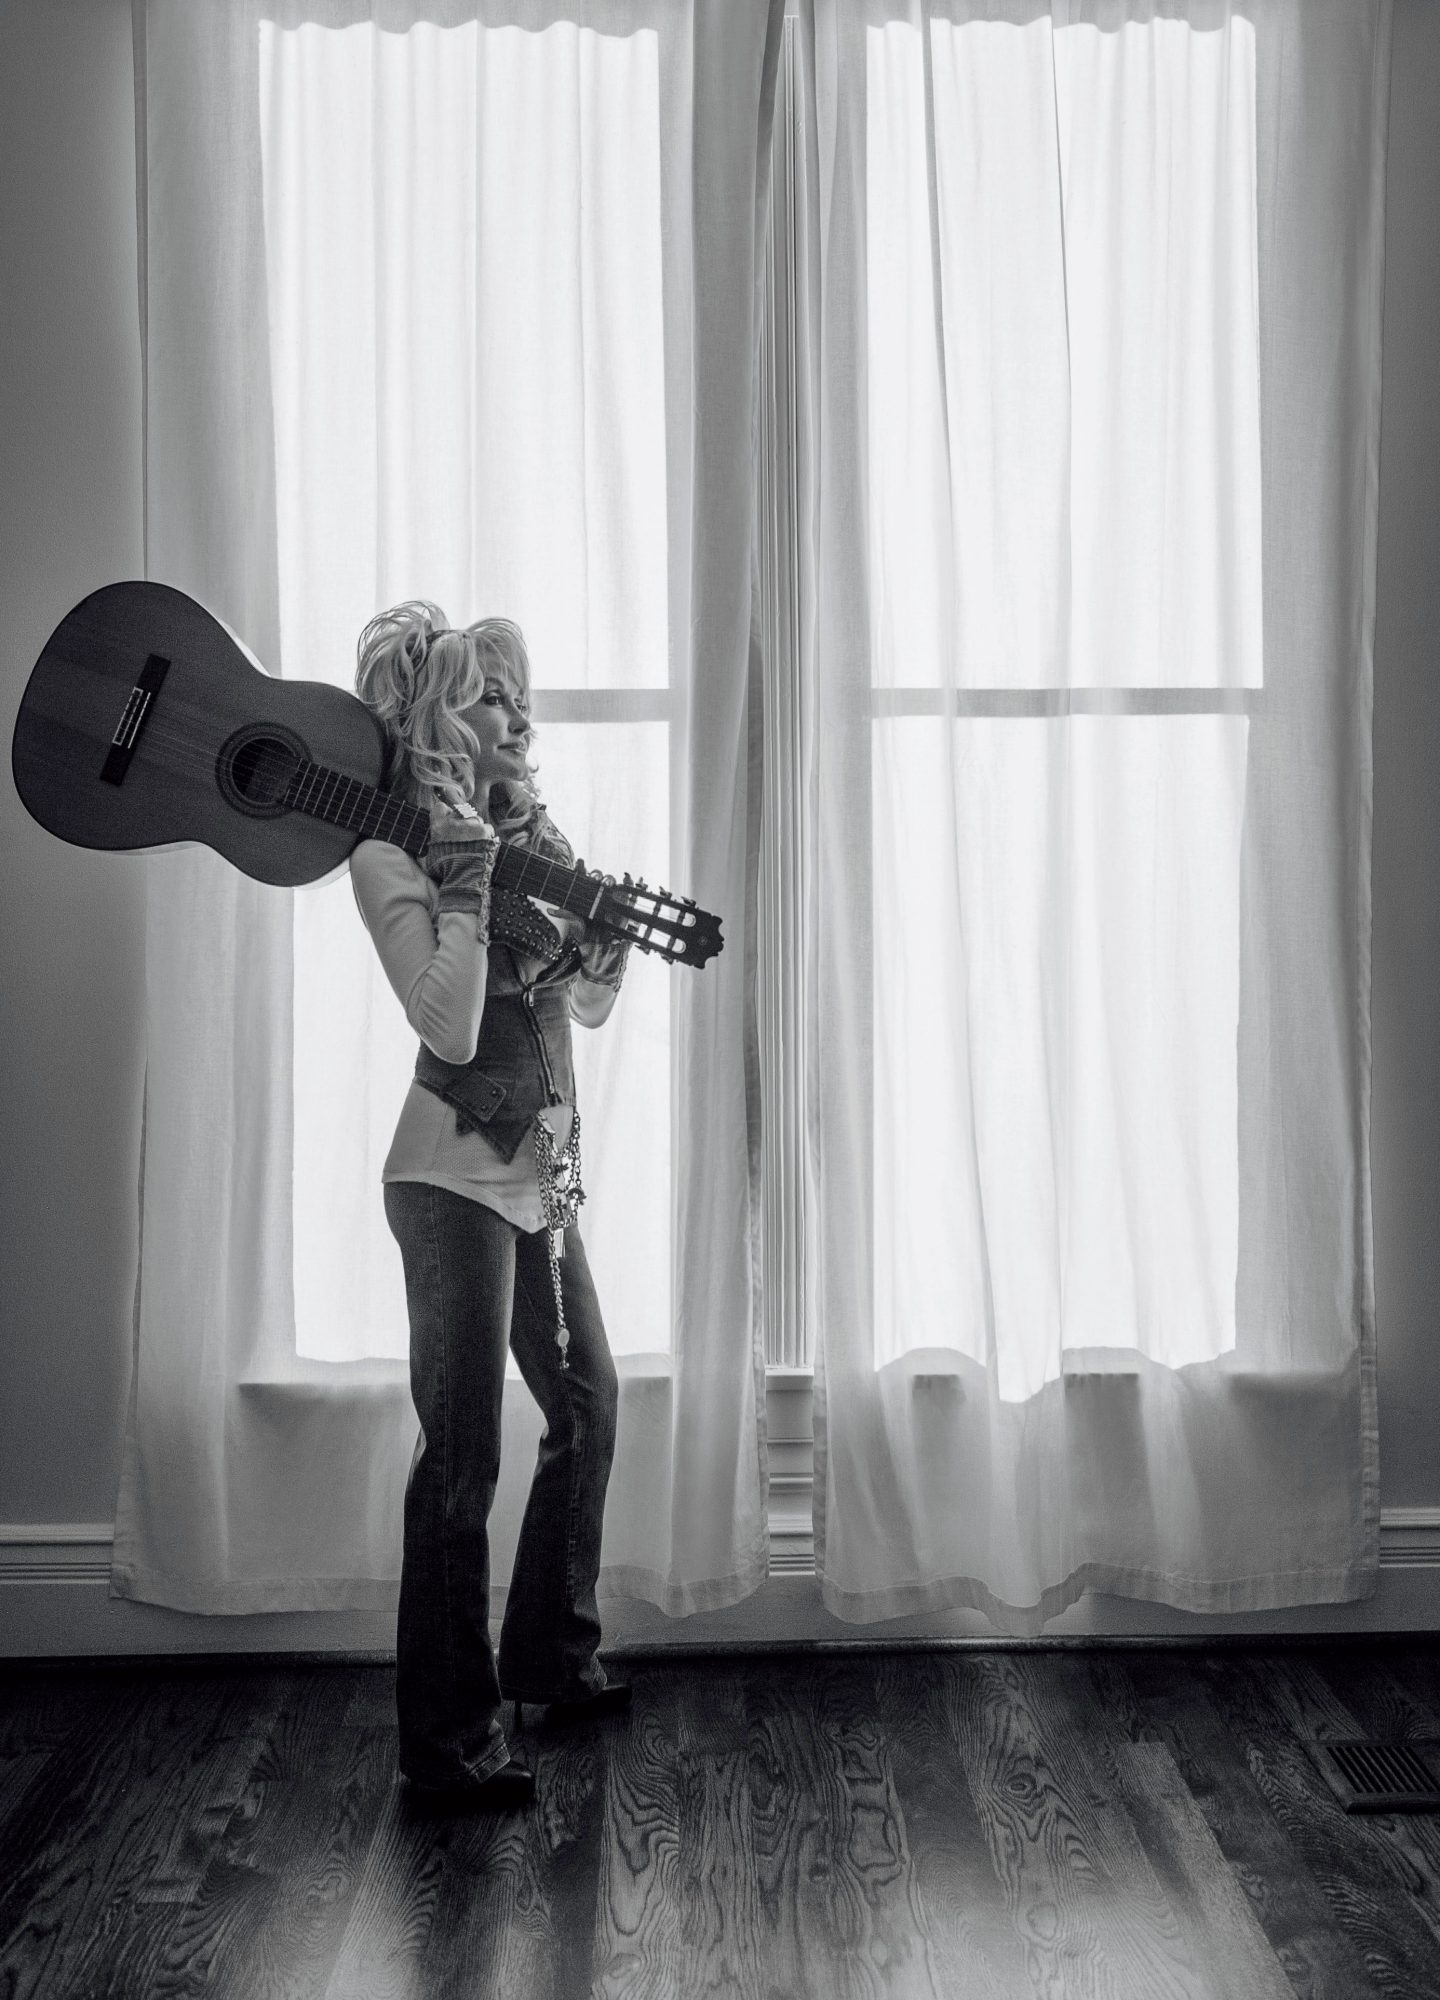 Dolly Parton holding a guitar over her shoulder